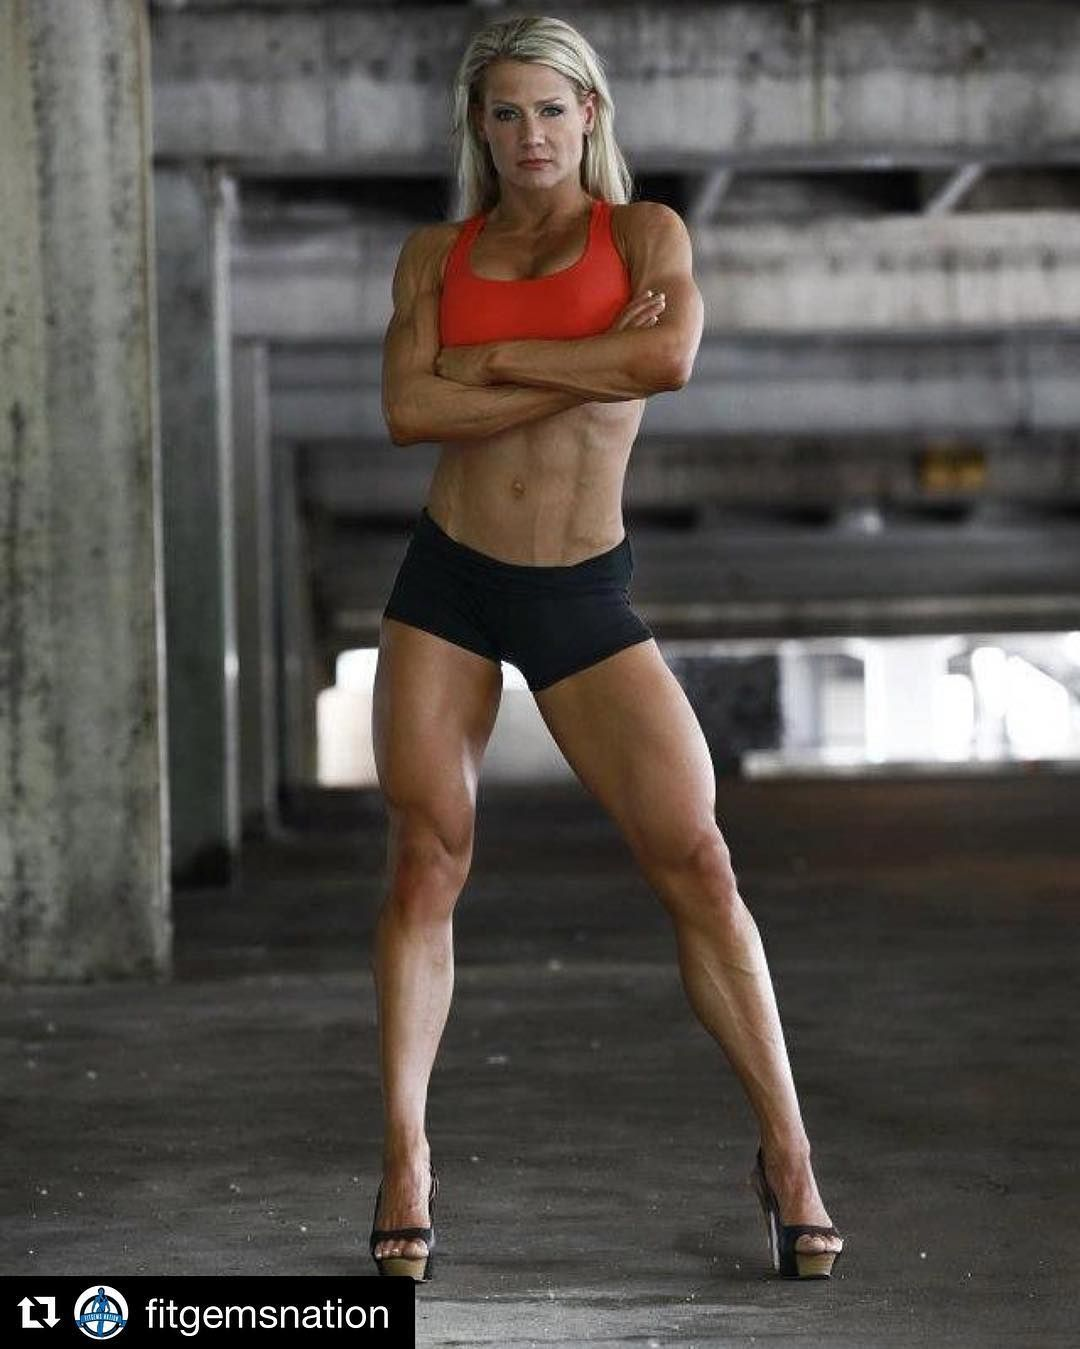 Repost Fitgemsnation We Would Like To Wish Whitney Jones A Happy